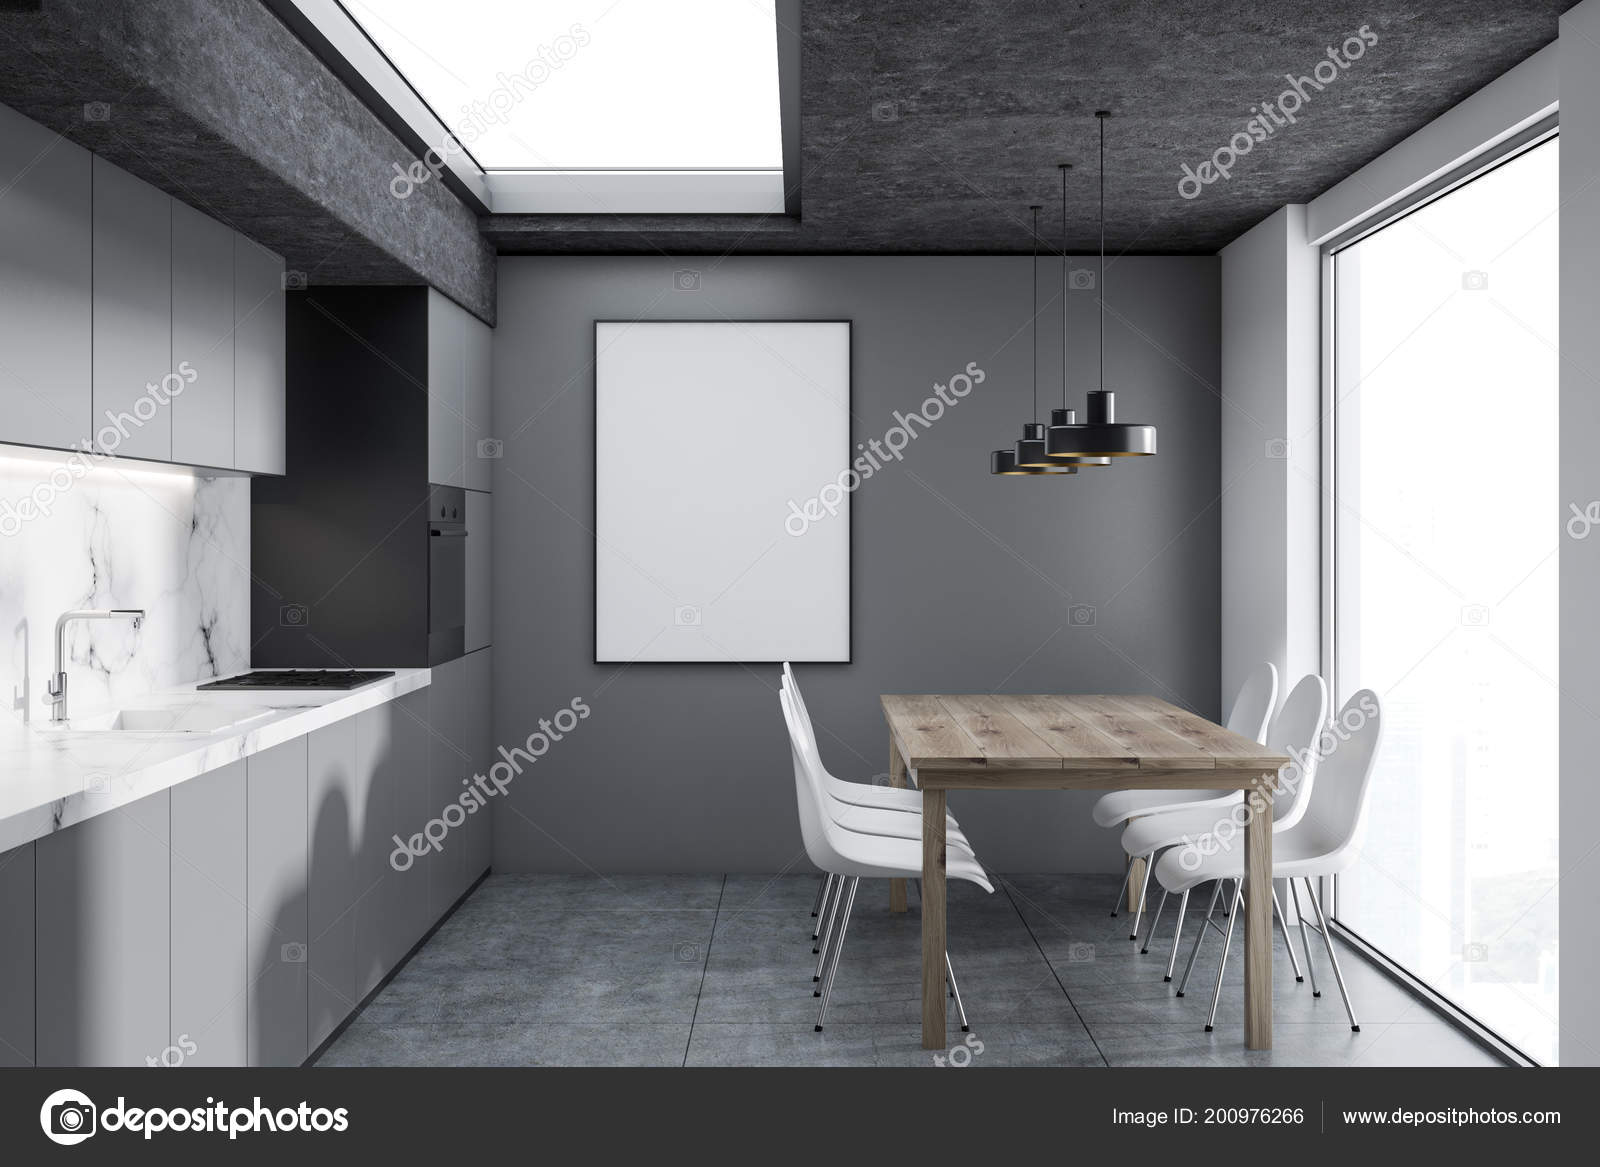 Concrete Wall Treatment Modern Kitchen Interior White Marble Gray Walls Concrete